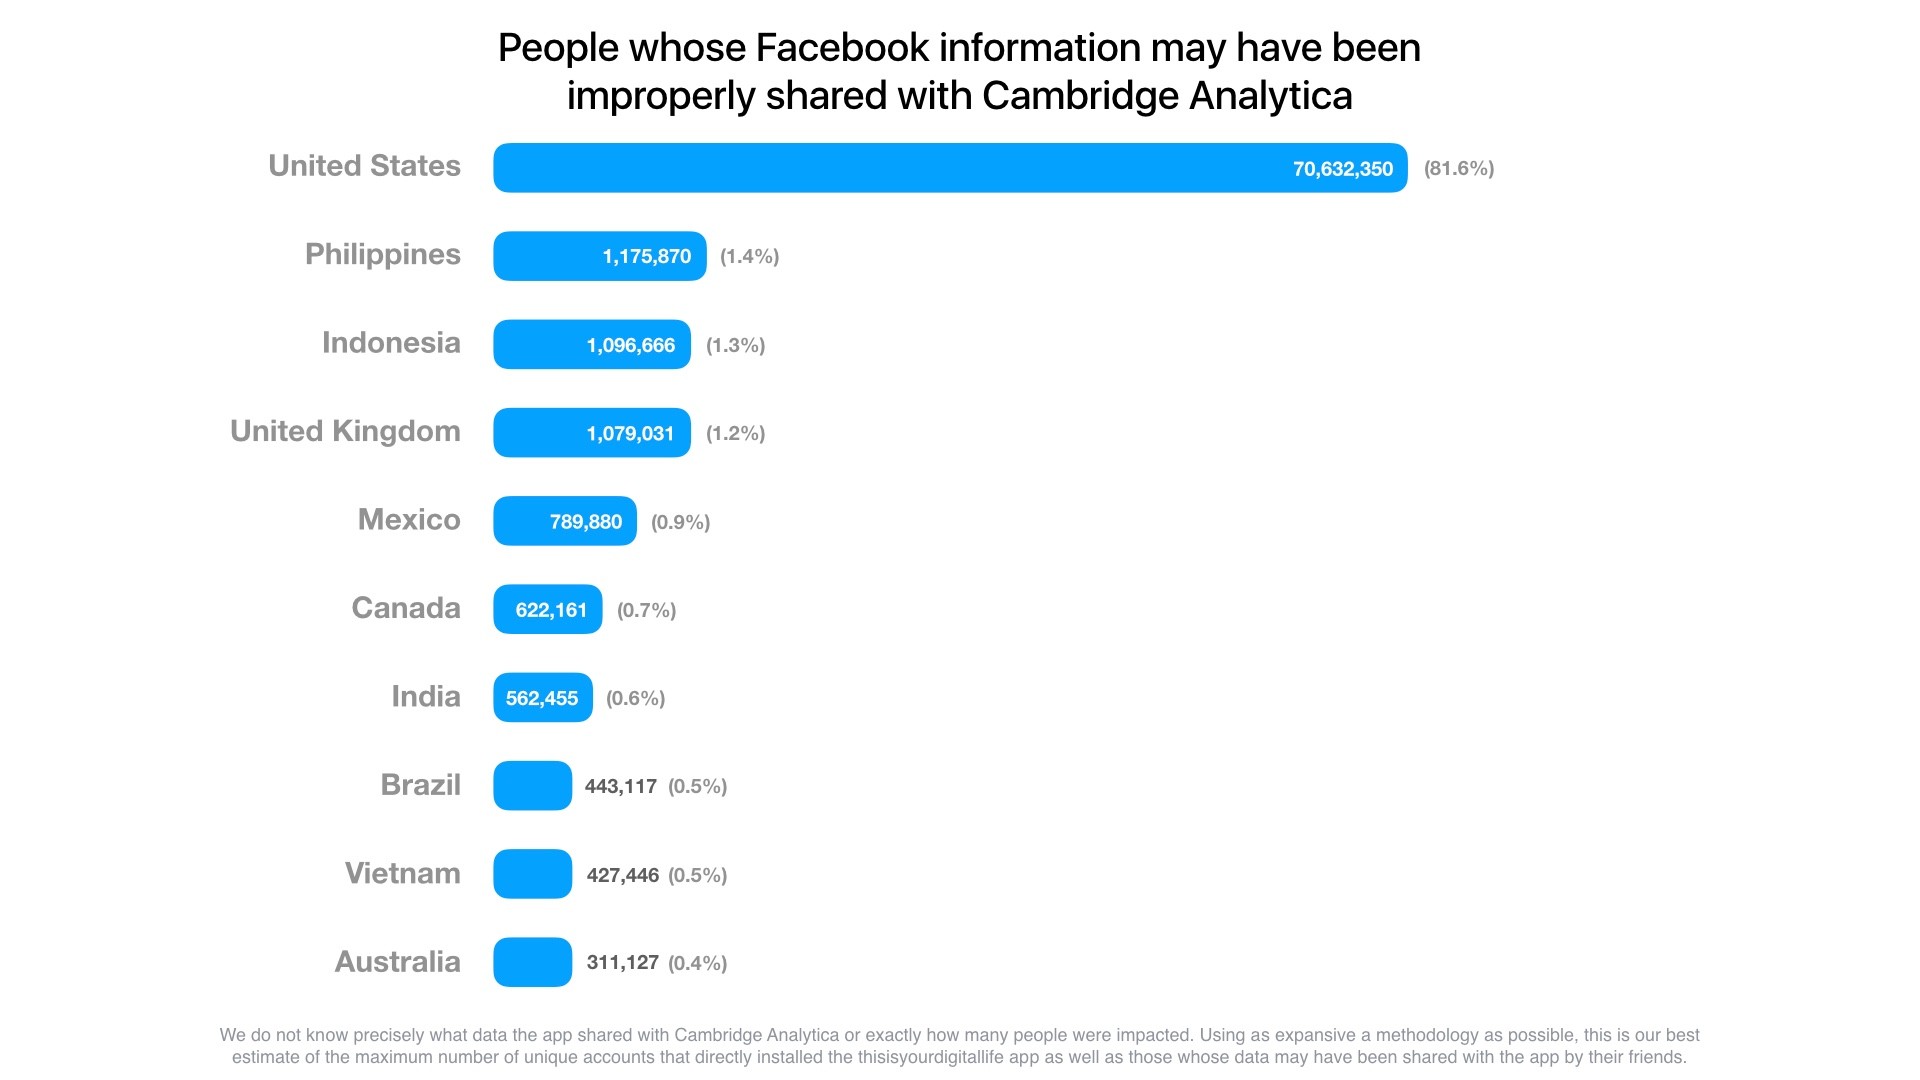 Facebook: países con mayor número de usuarios impactados por la extracción de datos de Cambridge Analytica.